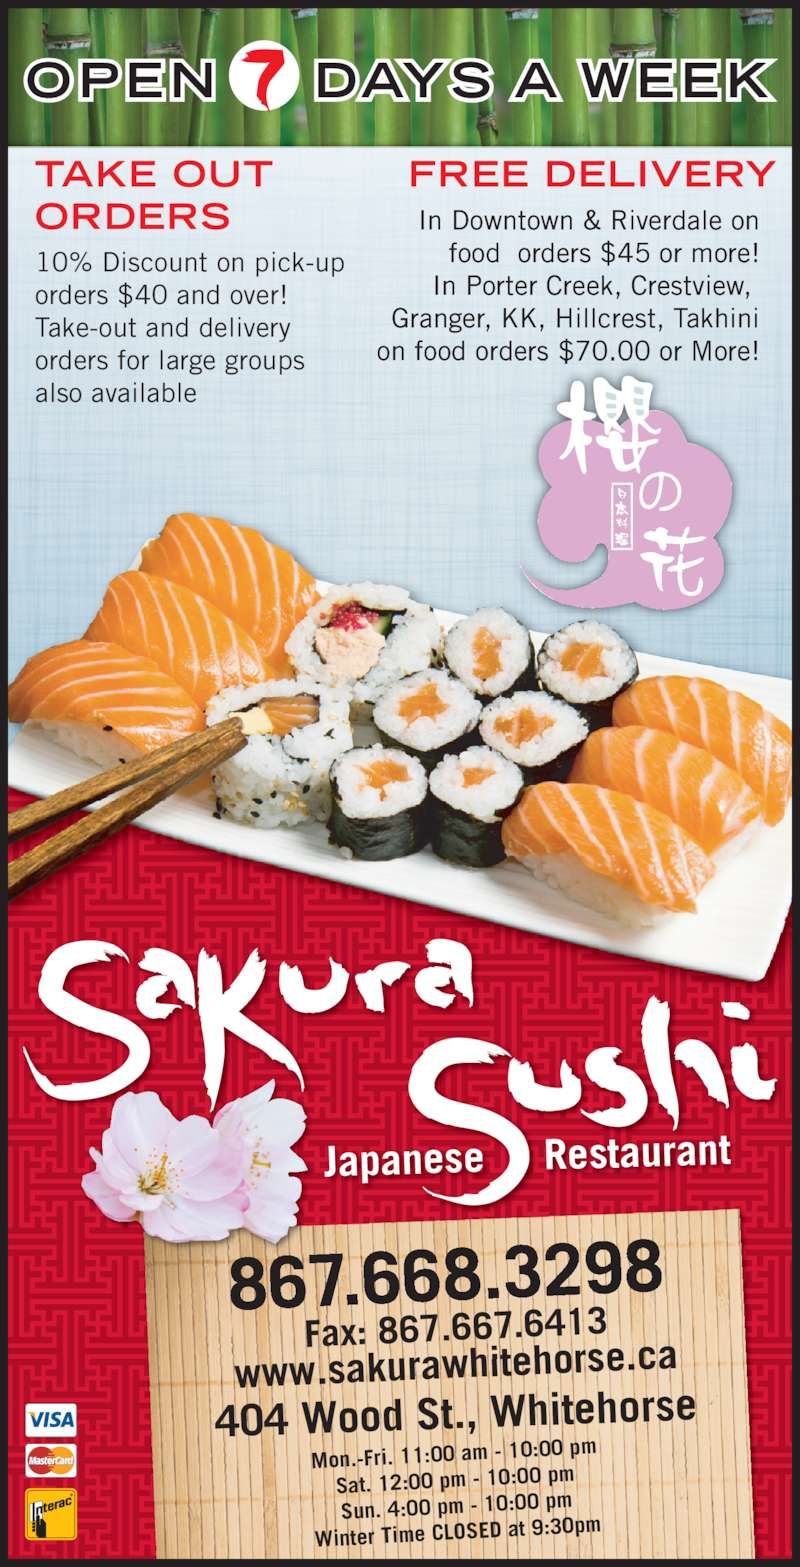 Golden Sakura Sushi Japanese Restaurant (867-668-3298) - Display Ad - In Downtown & Riverdale on food  orders $45 or more! In Porter Creek, Crestview,  Granger, KK, Hillcrest, Takhini on food orders $70.00 or More! OPEN DAYS A WEEK 867.668.3298  Mon.-Fri. 11:00 am - 10:00  pm Sat. 12:00 pm - 10:00 pm Sun. 4:00 pm - 10:00 pm Winter Time CLOSED at 9:3 0pm 404 Wood St., Whitehorse Fax: 867.667.6413 www.sakurawhitehorse.ca Japanese     Restaurant TAKE OUT  ORDERS 10% Discount on pick-up  orders $40 and over! Take-out and delivery orders for large groups also available FREE DELIVERY